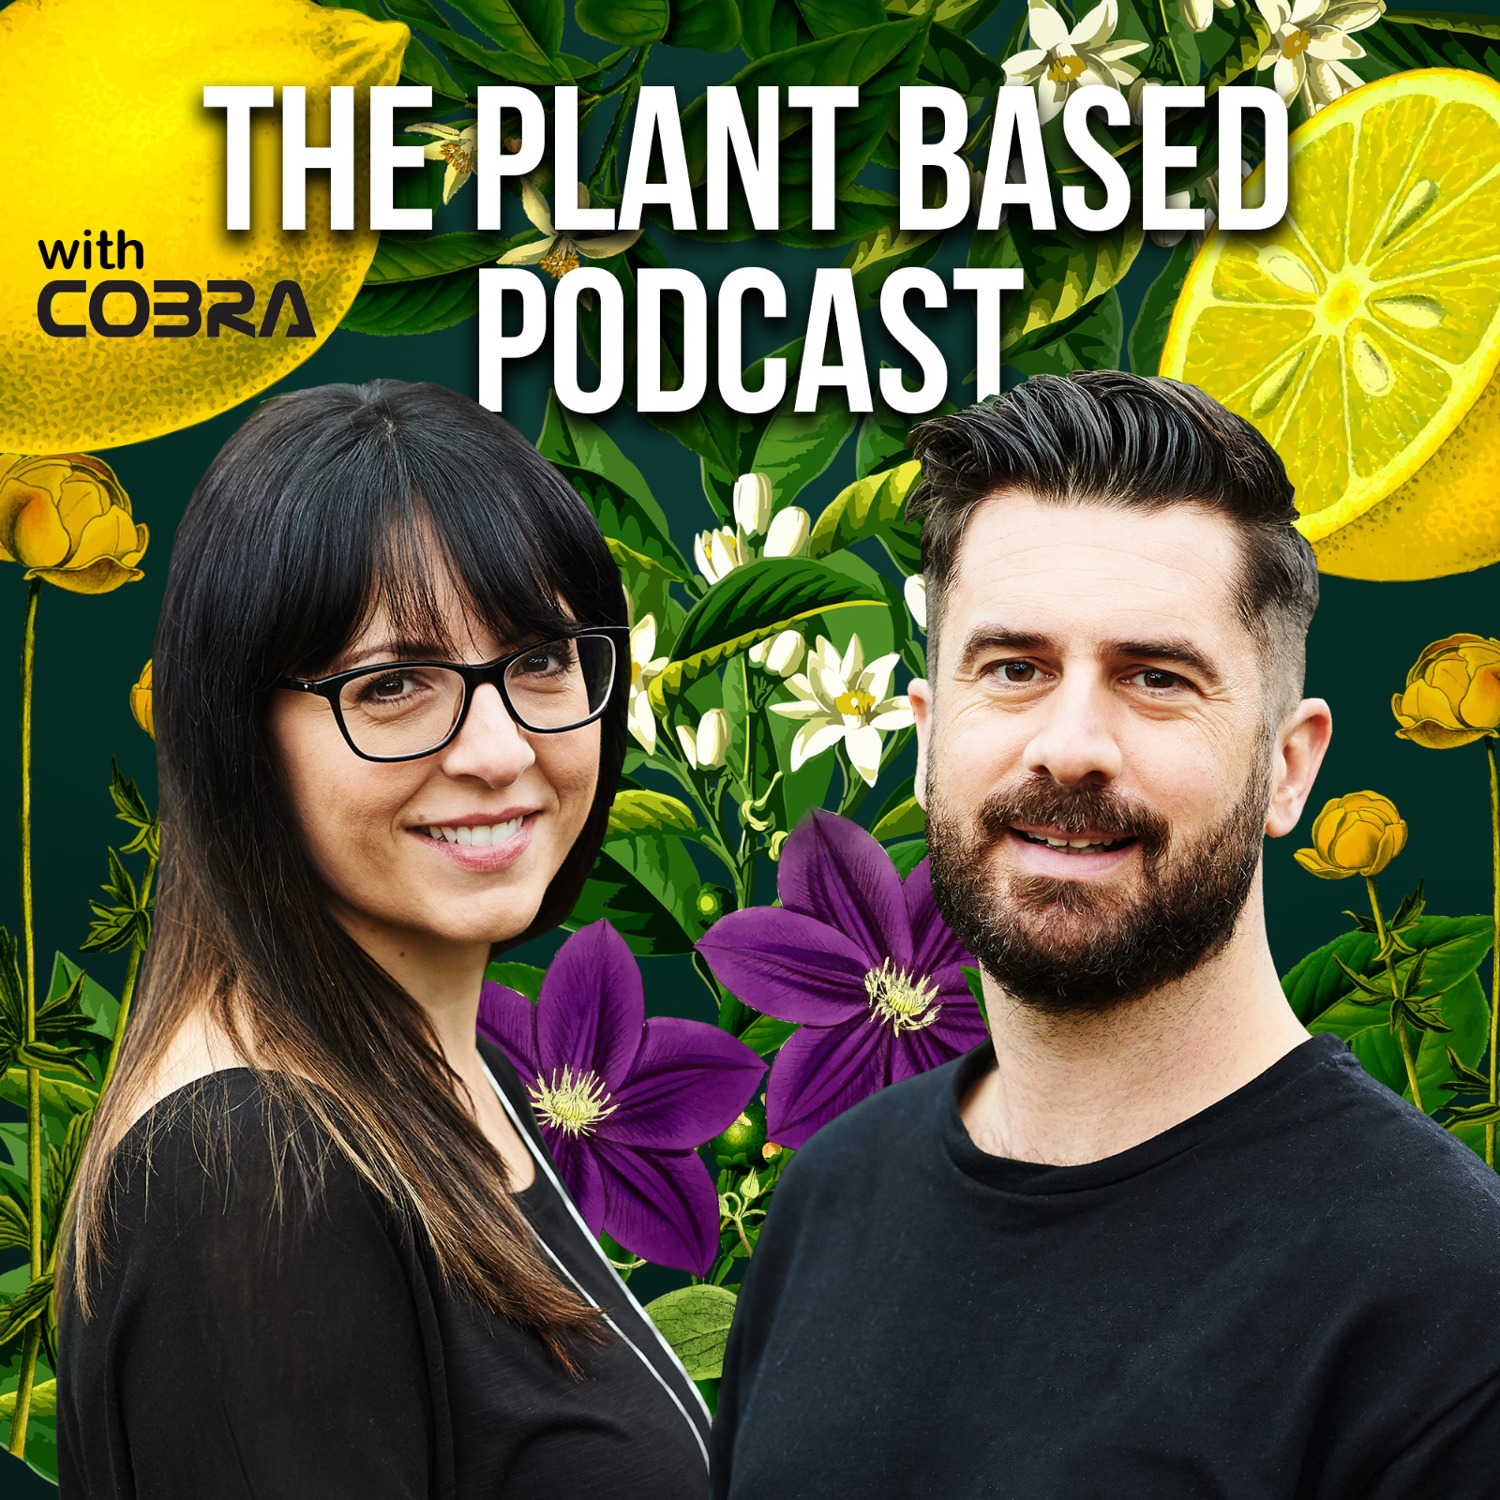 The Plant Based Podcast S4 Episode Twelve - Gardening in the American heat with Lynn Ferguson!